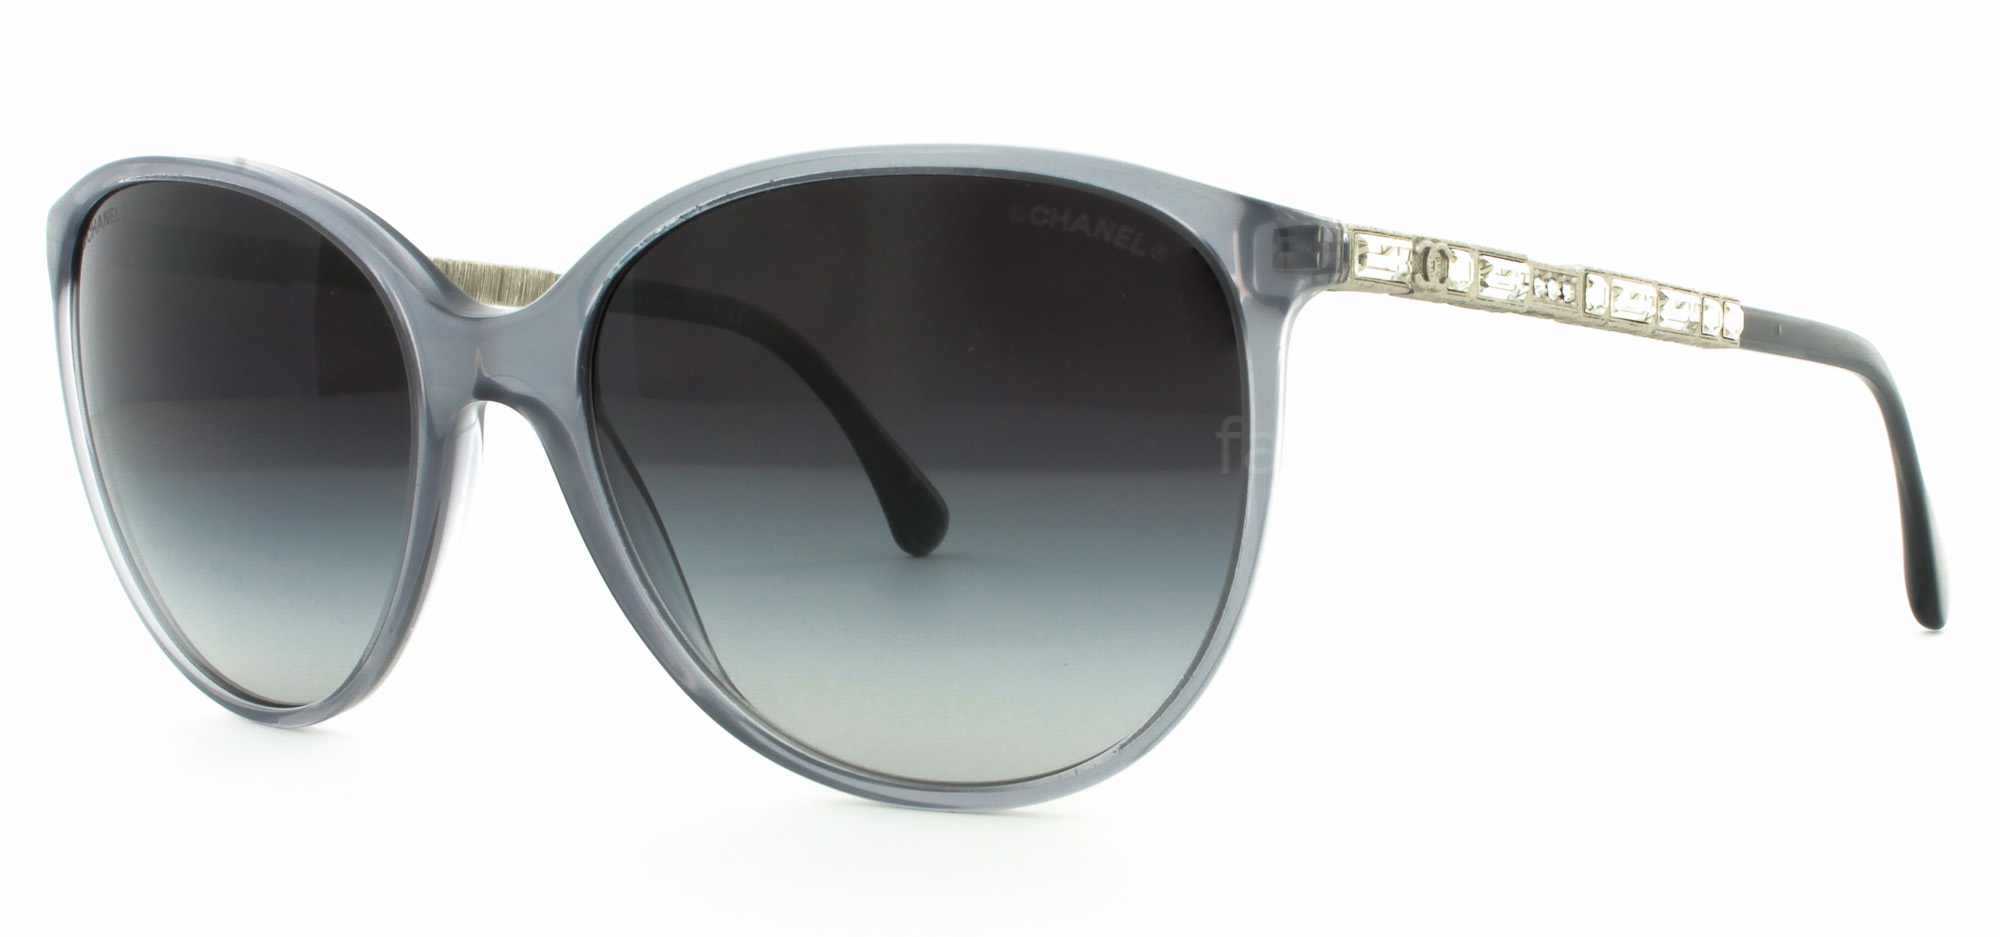 Chanel 5306b sunglasses for Decor my eyes